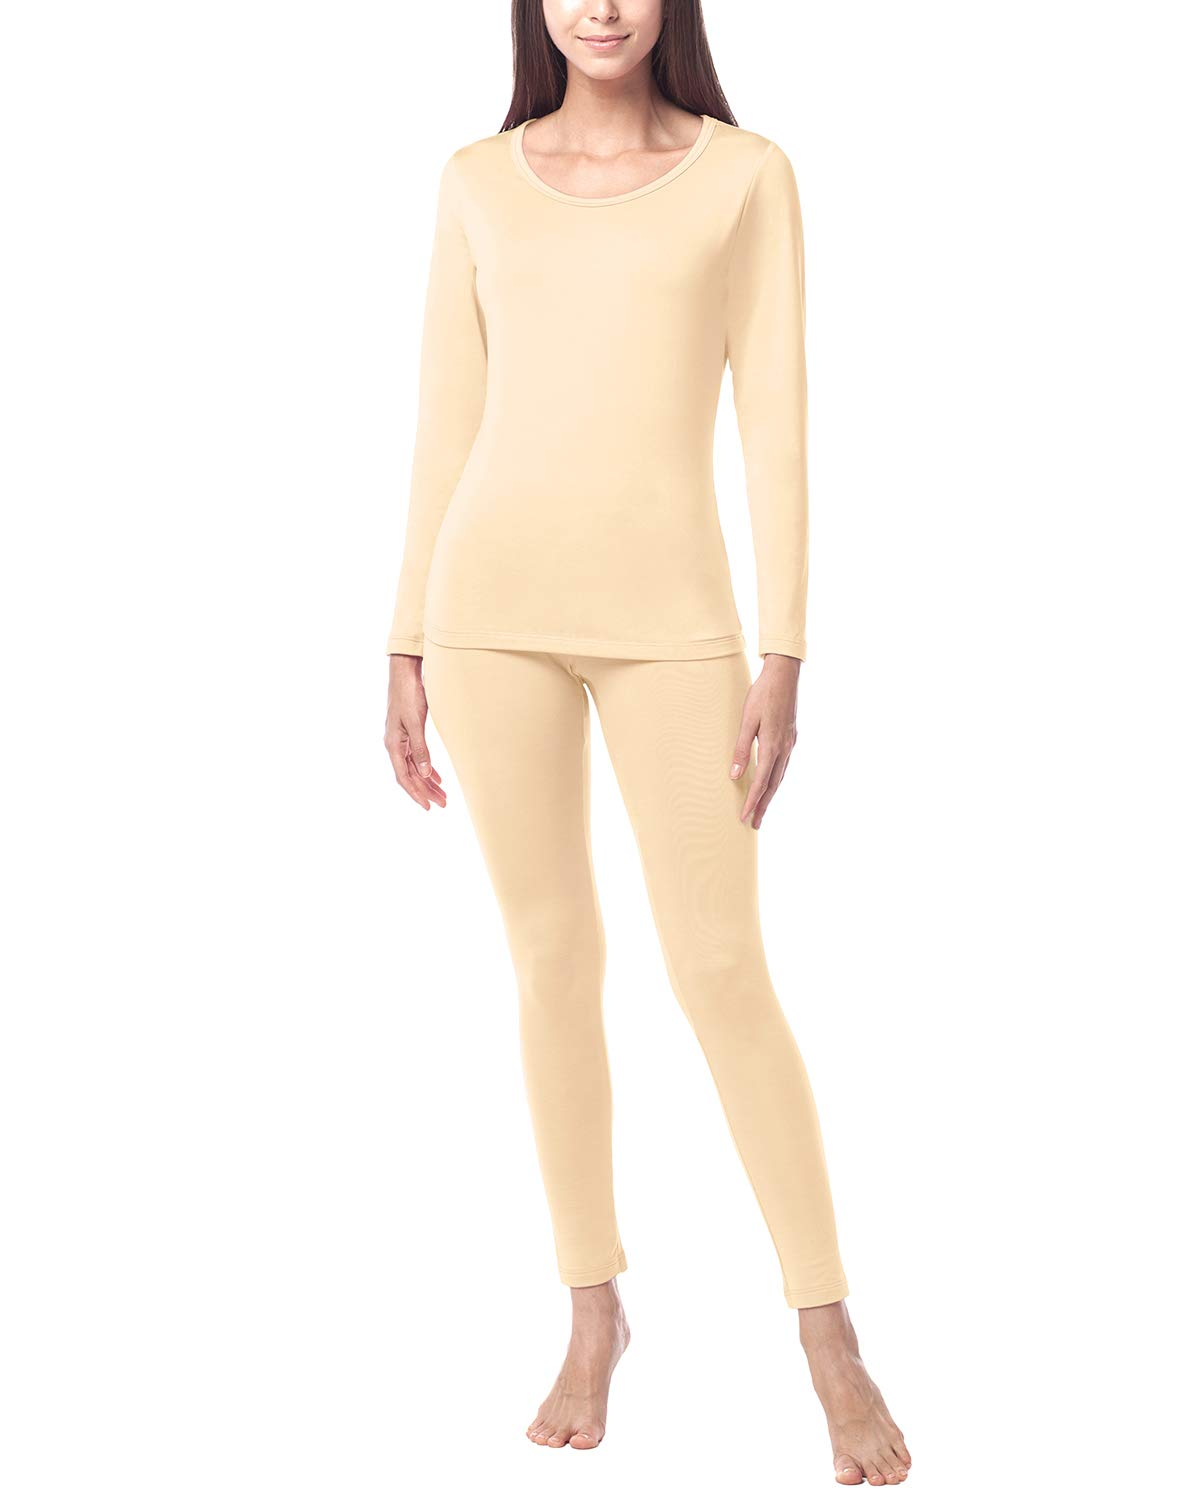 LAPASA Women's Lightweight Thermal Underwear Long John Set Fleece Lined Base Layer Top and Bottom L17 (Large, Nude) by LAPASA